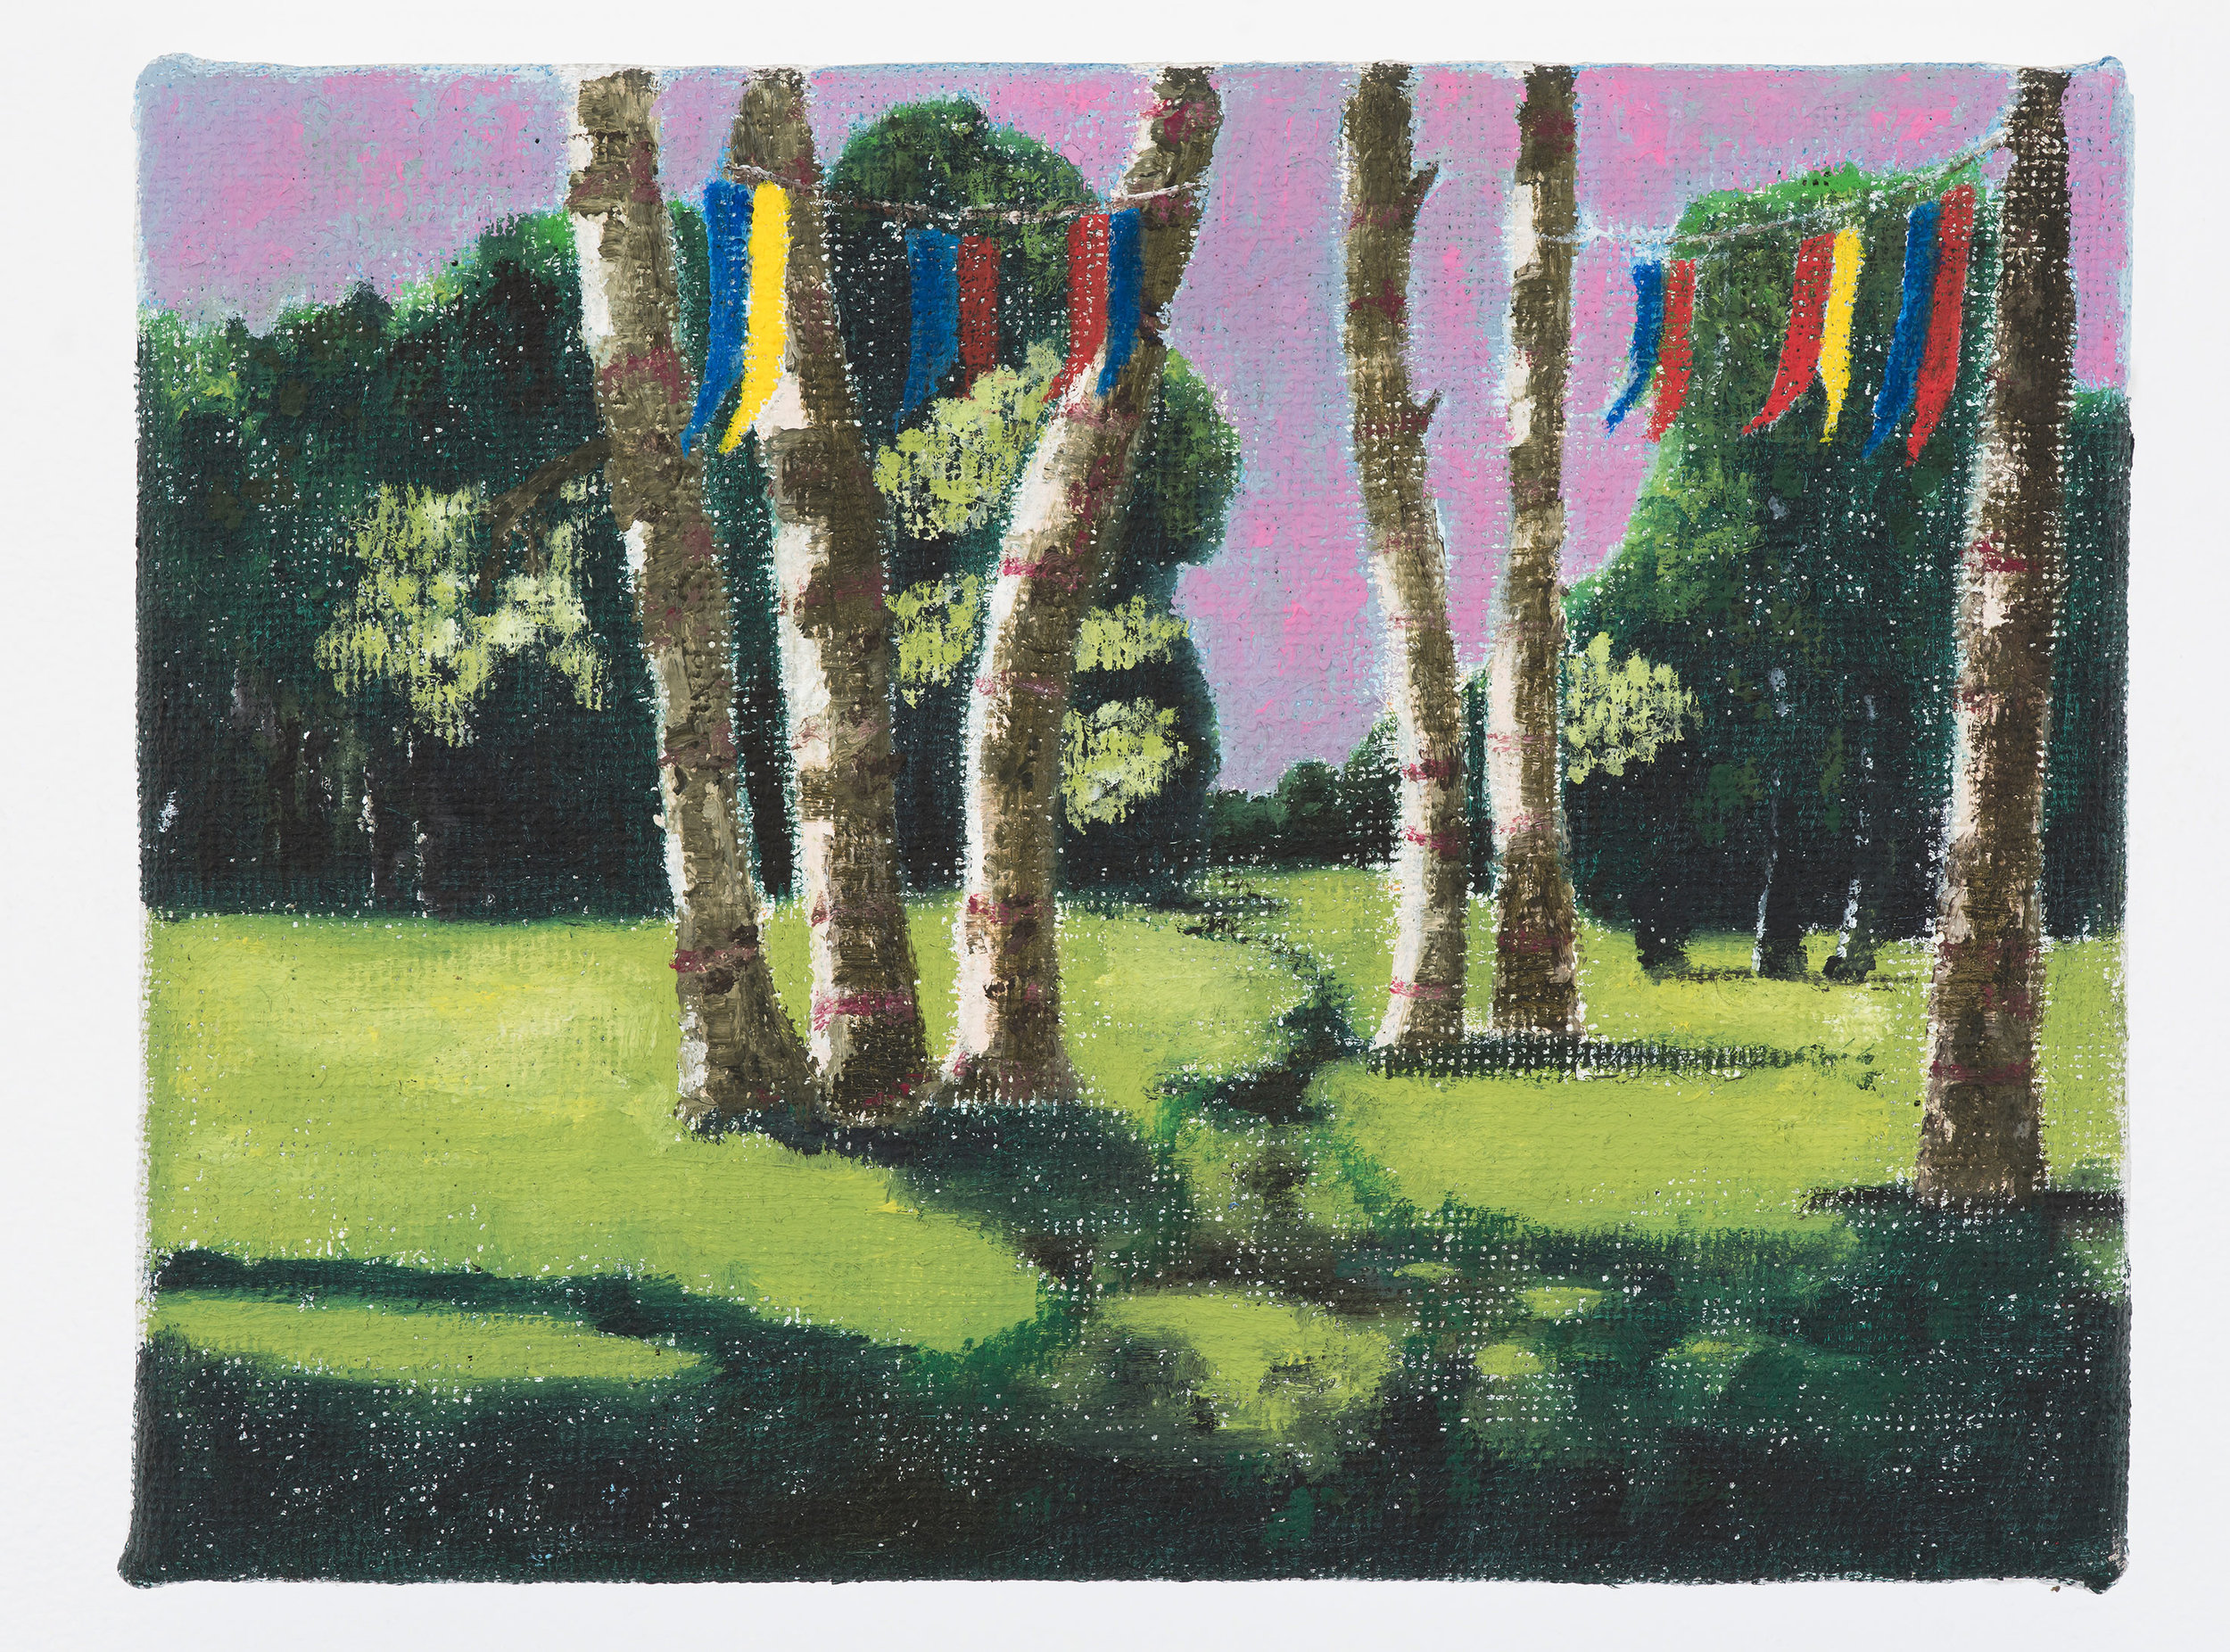 PETER ALWAST  Flag Day  2017 oil on hessian 31 x 24cm